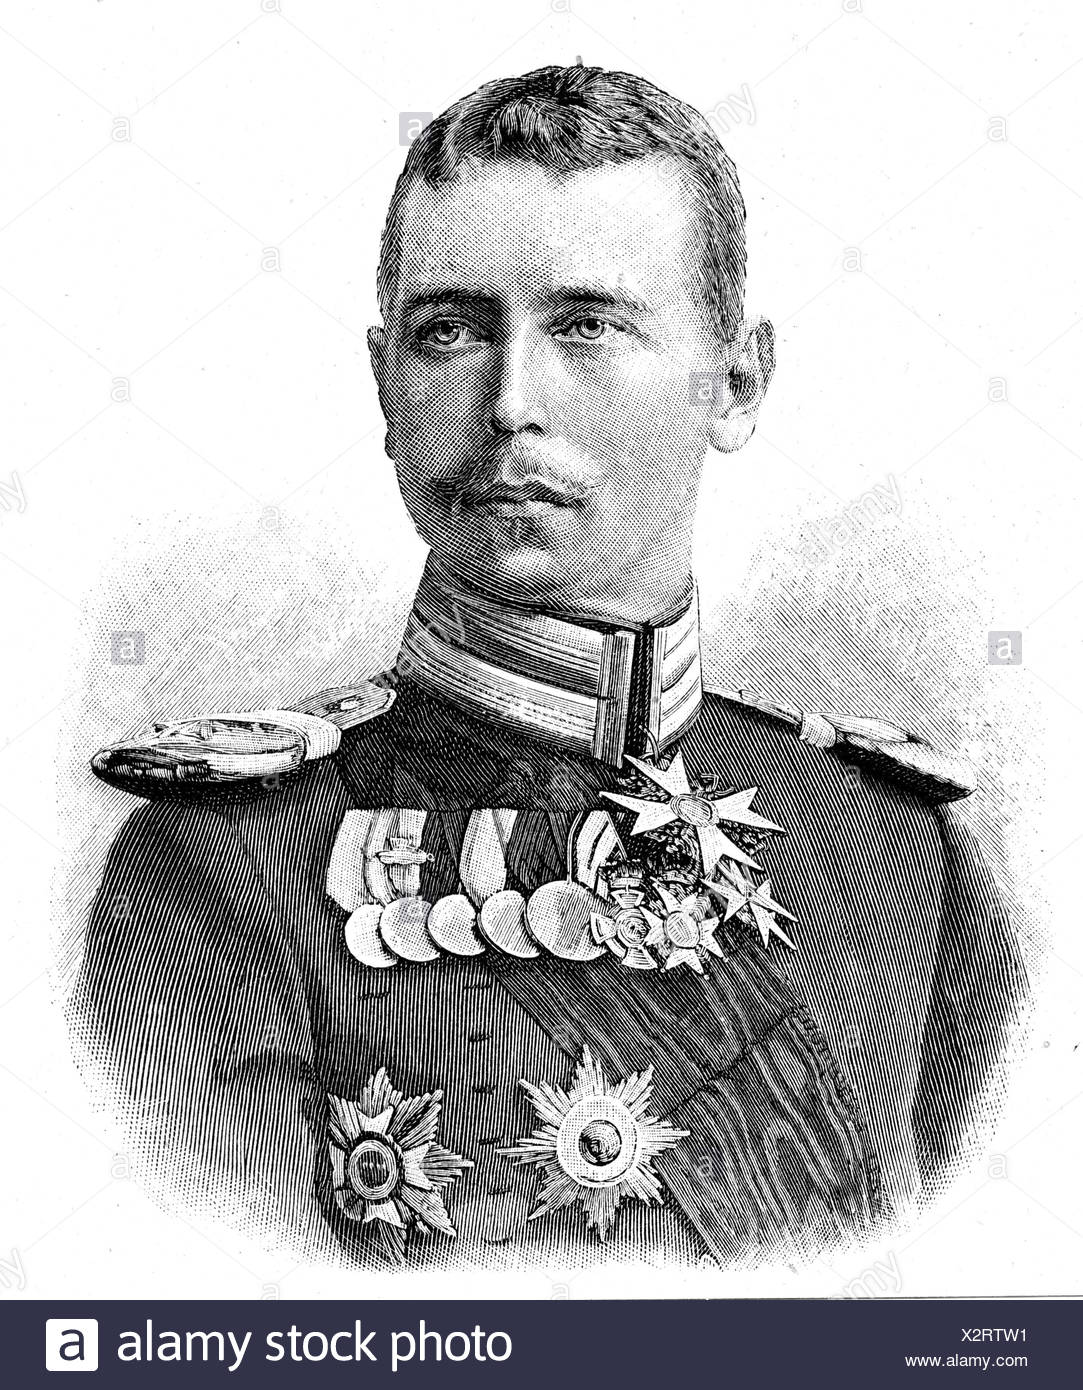 Alfred Alexander, 15.10.1874 - 6.2.1899, Heditary Prince of  , Additional-Rights-Clearances-NA - Stock Image